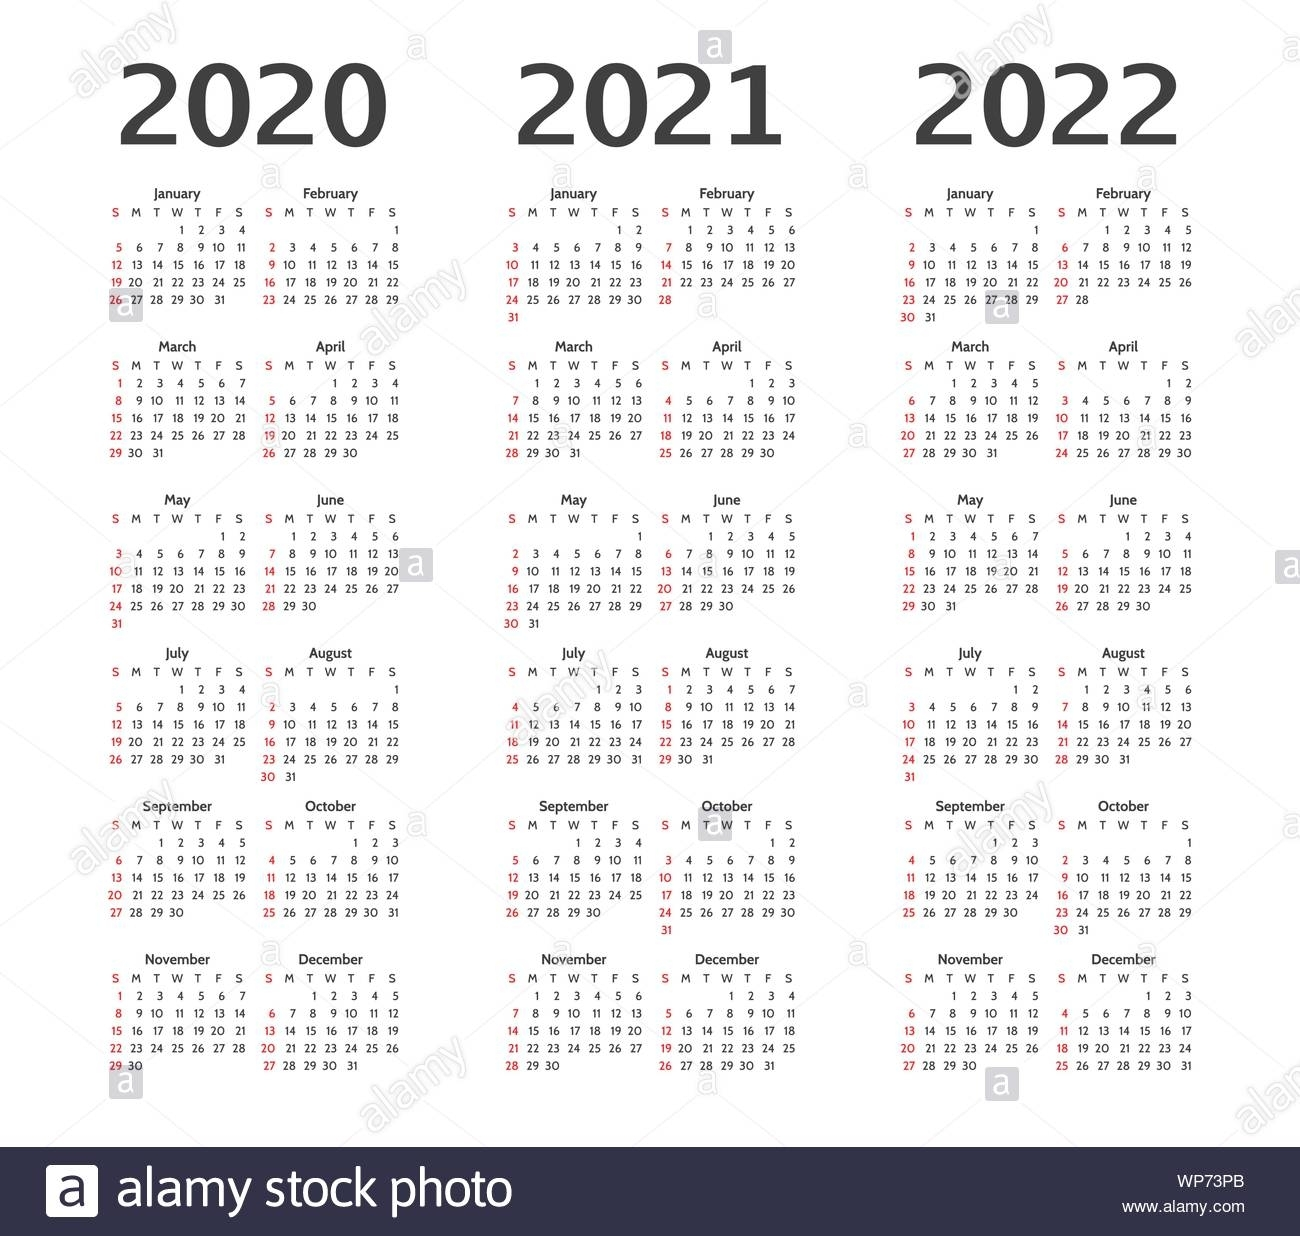 Simple Calendar Layout For 2020, 2021, 2022 Years. Week within Calendar For 2020 2021 2022